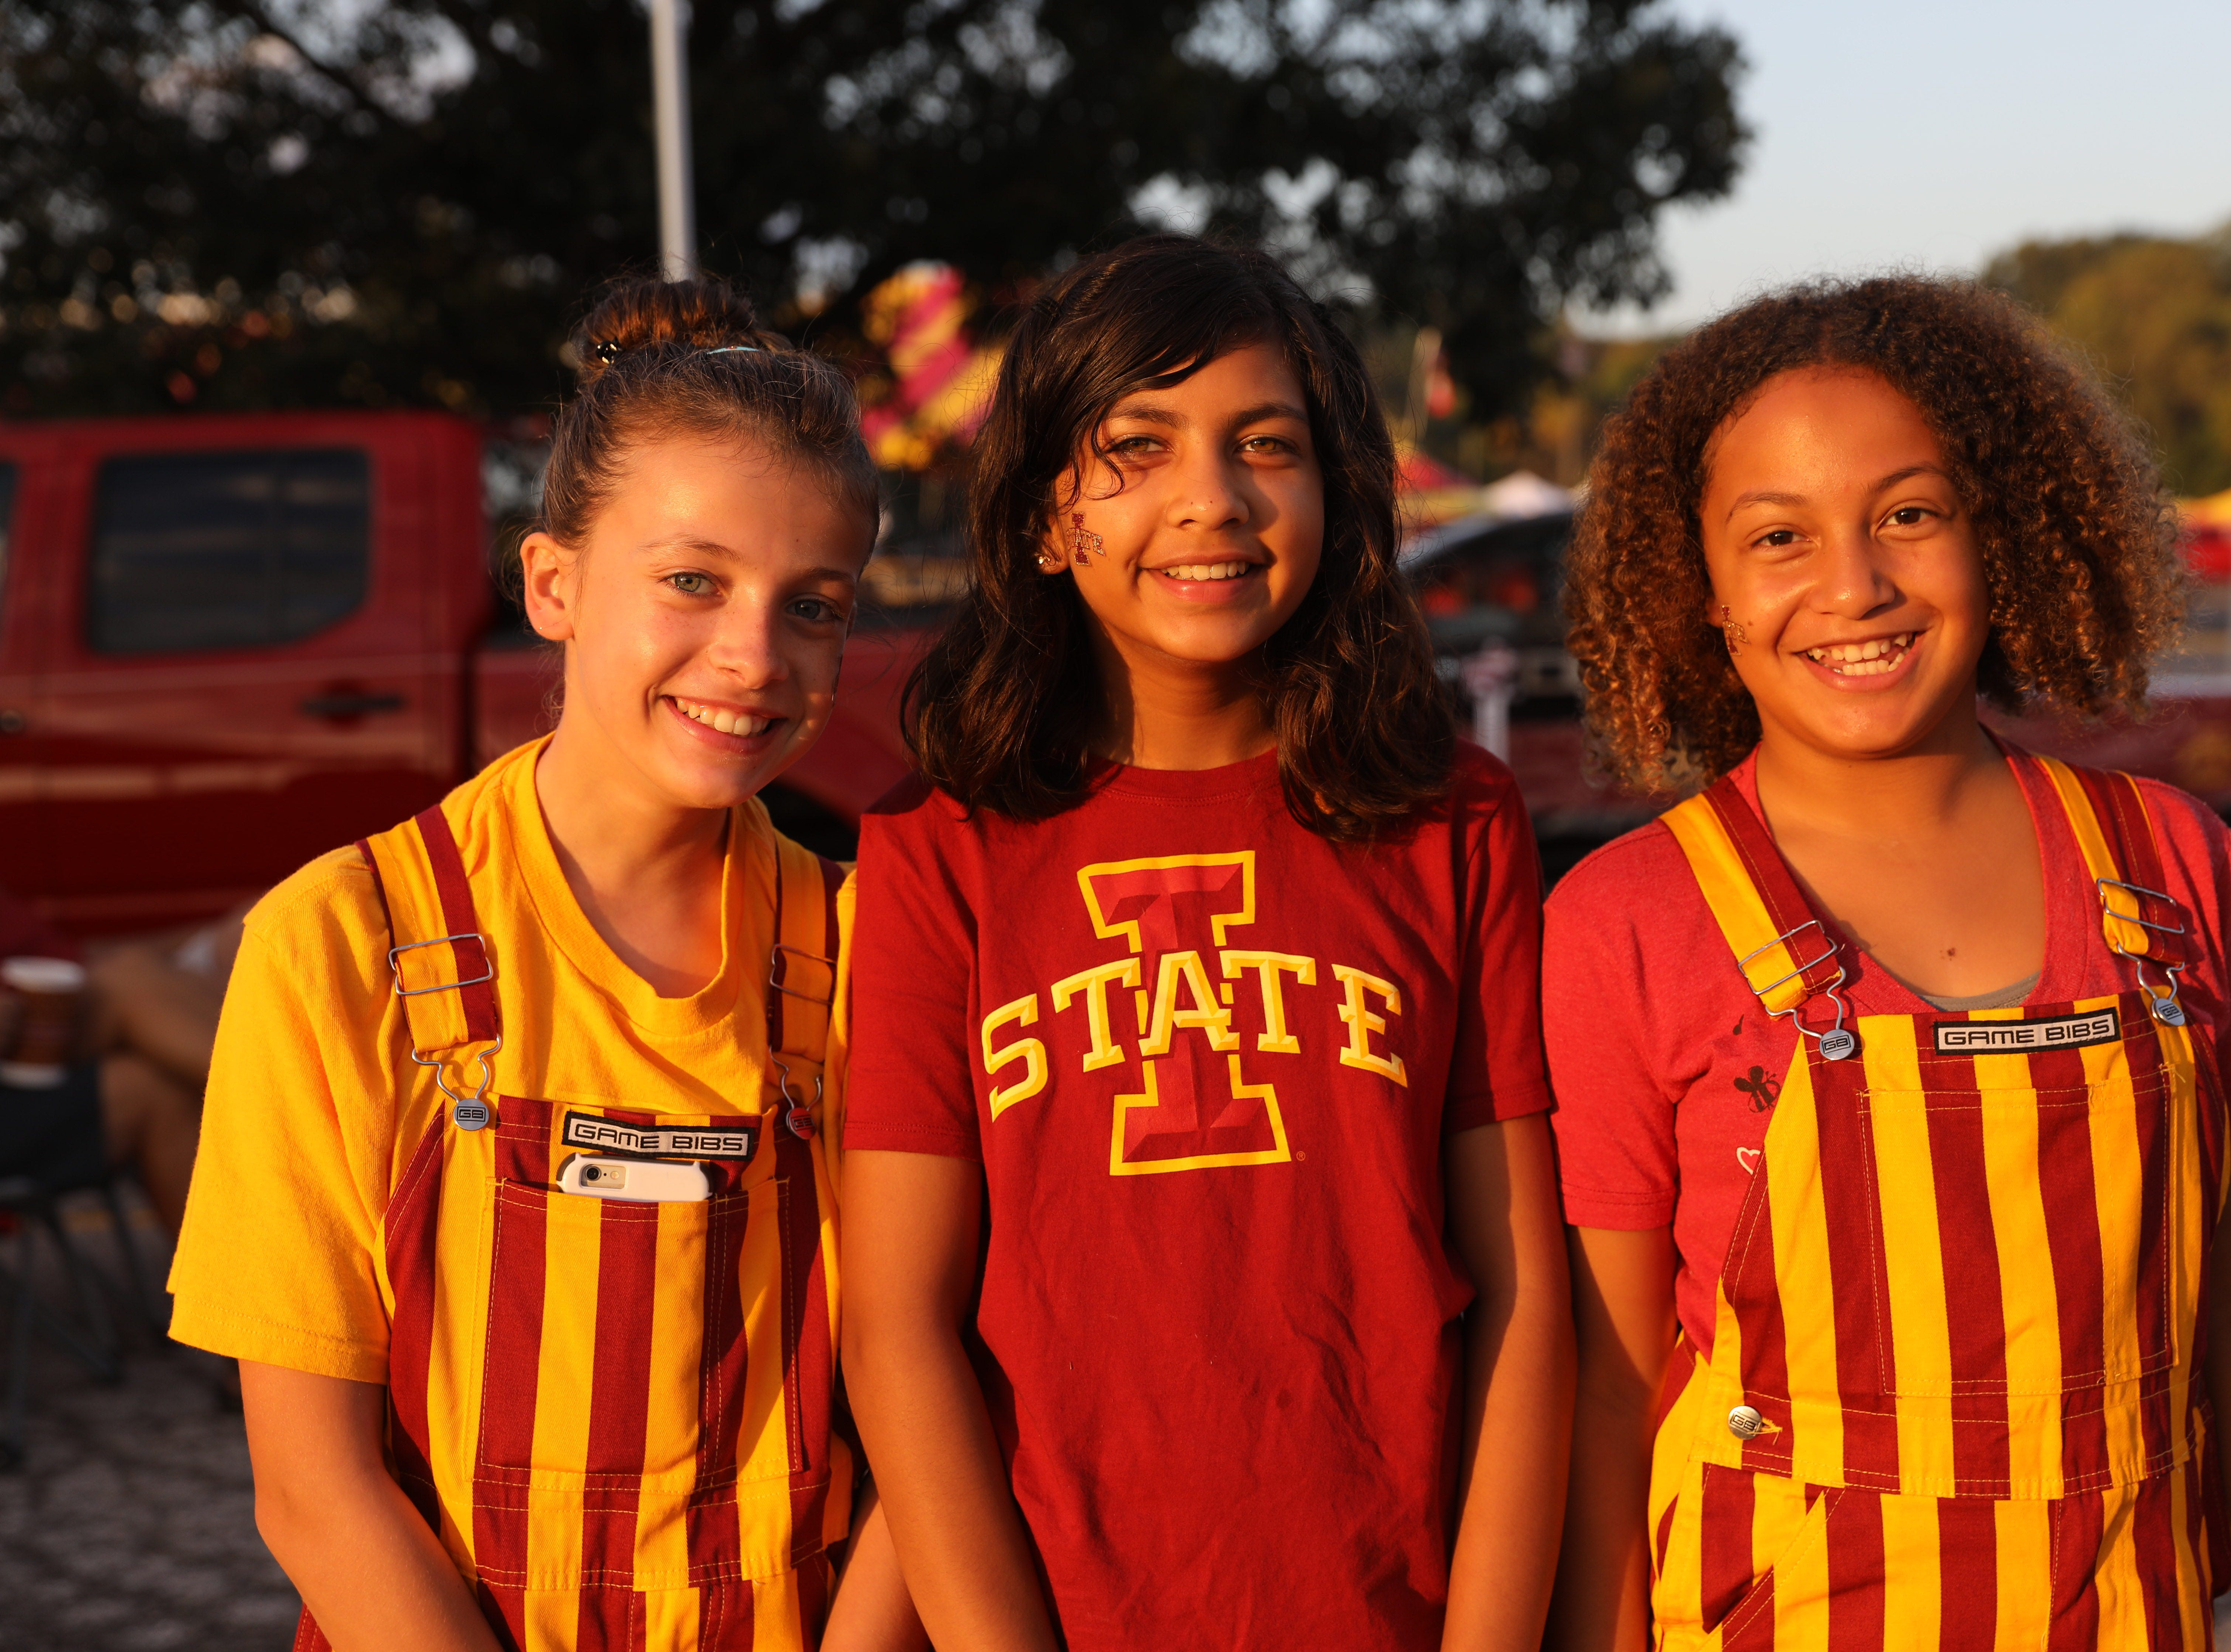 Ashlin Dale, 11, (from left) Risa Jha, 11, and Marley Brown, 12, all of Hayward, Calif. Saturday, Sept. 15, 2018, before the Iowa State football game against Oklahoma in Ames.